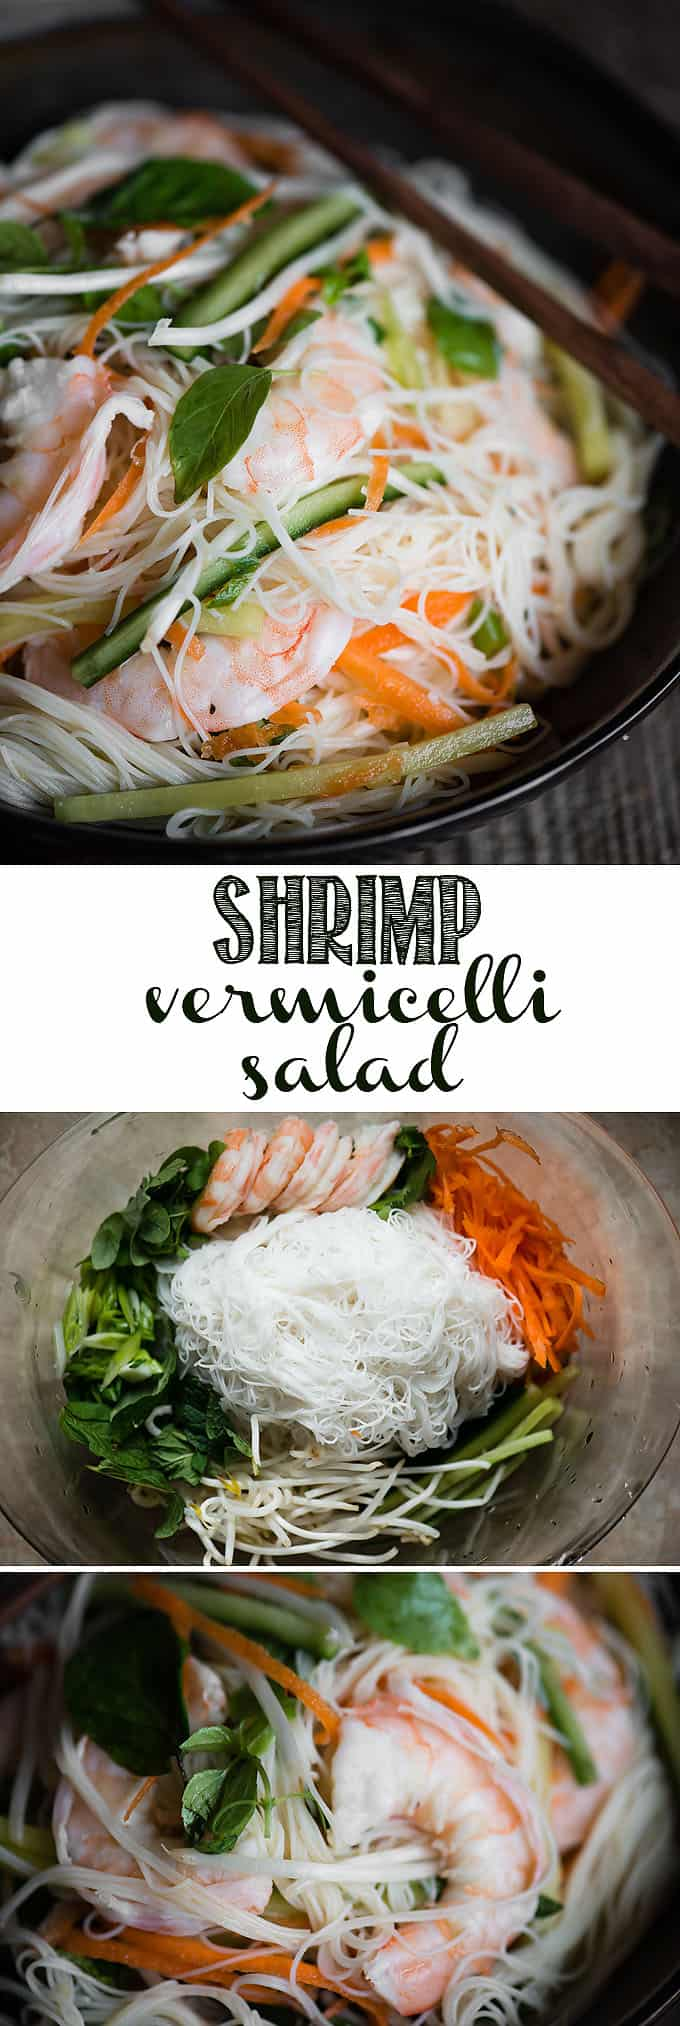 Shrimp Vermicelli Salad is basically a shrimp summer roll, minus the rice paper, that has been deconstructed. This Vietnamese noodle salad, loaded with fresh herbs and vegetables, can be served warm or cold and the recipe includes a homemade peanut sauce vinaigrette. Grab a fork or chop sticks to dig in! #Shrimp #Vermicelli #Salad #ricenoodle #ricenoodlesalad